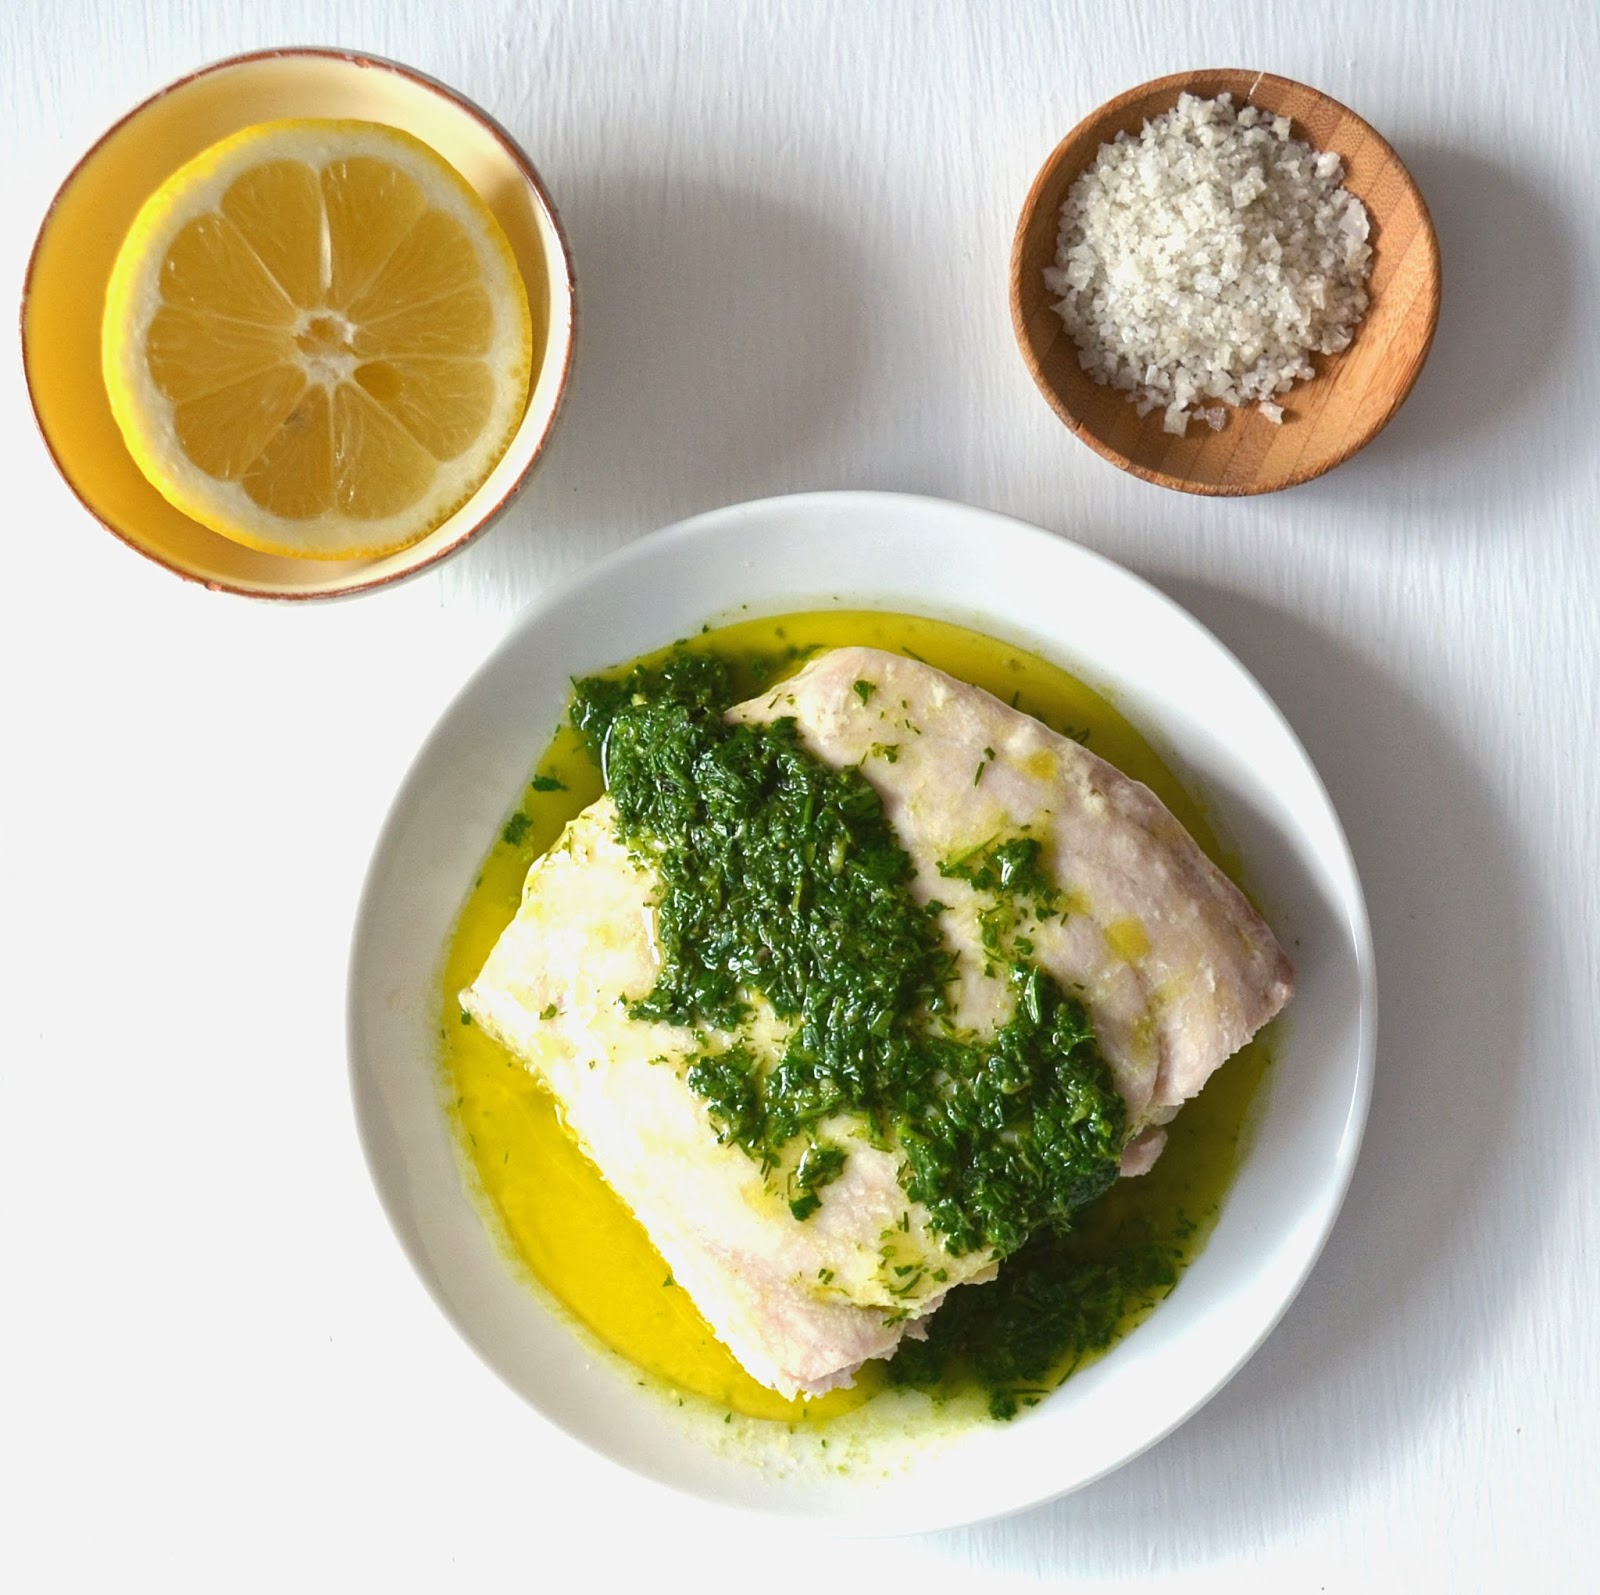 Jilly inspired baked fish with lemon herb sauce for Lemon fish sauce recipe